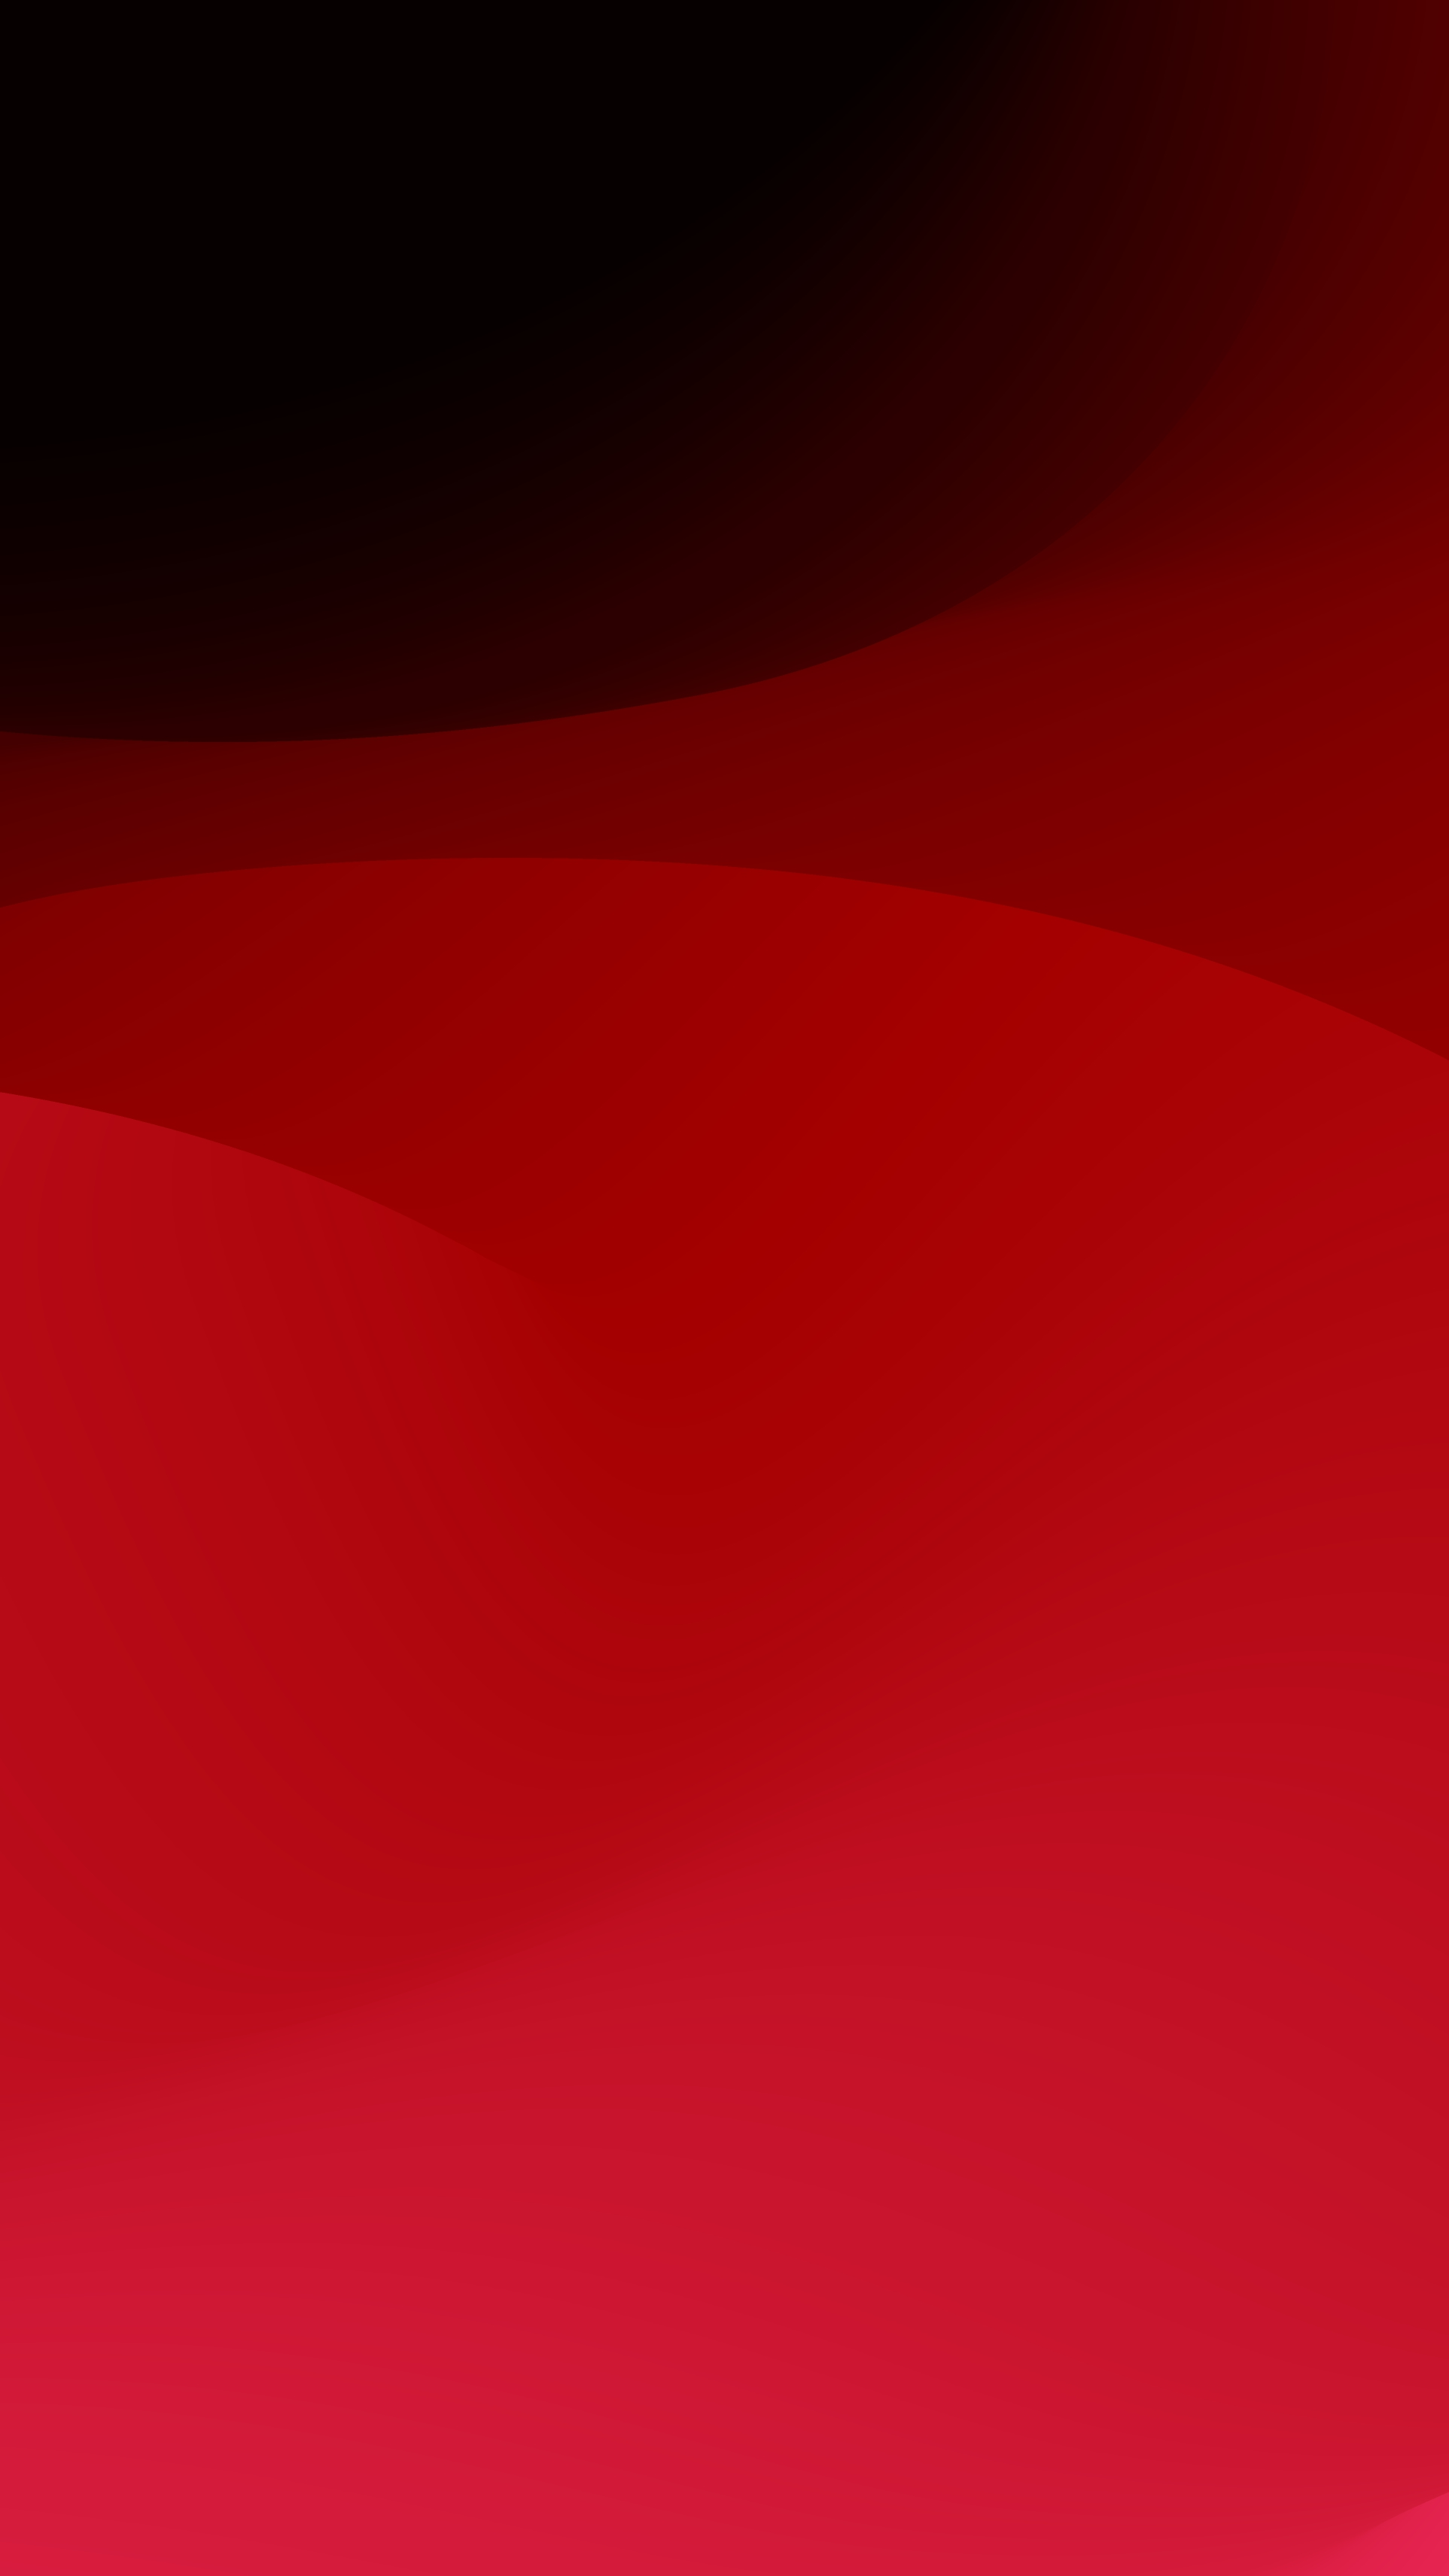 Abstract Red iPhone Wallpaper